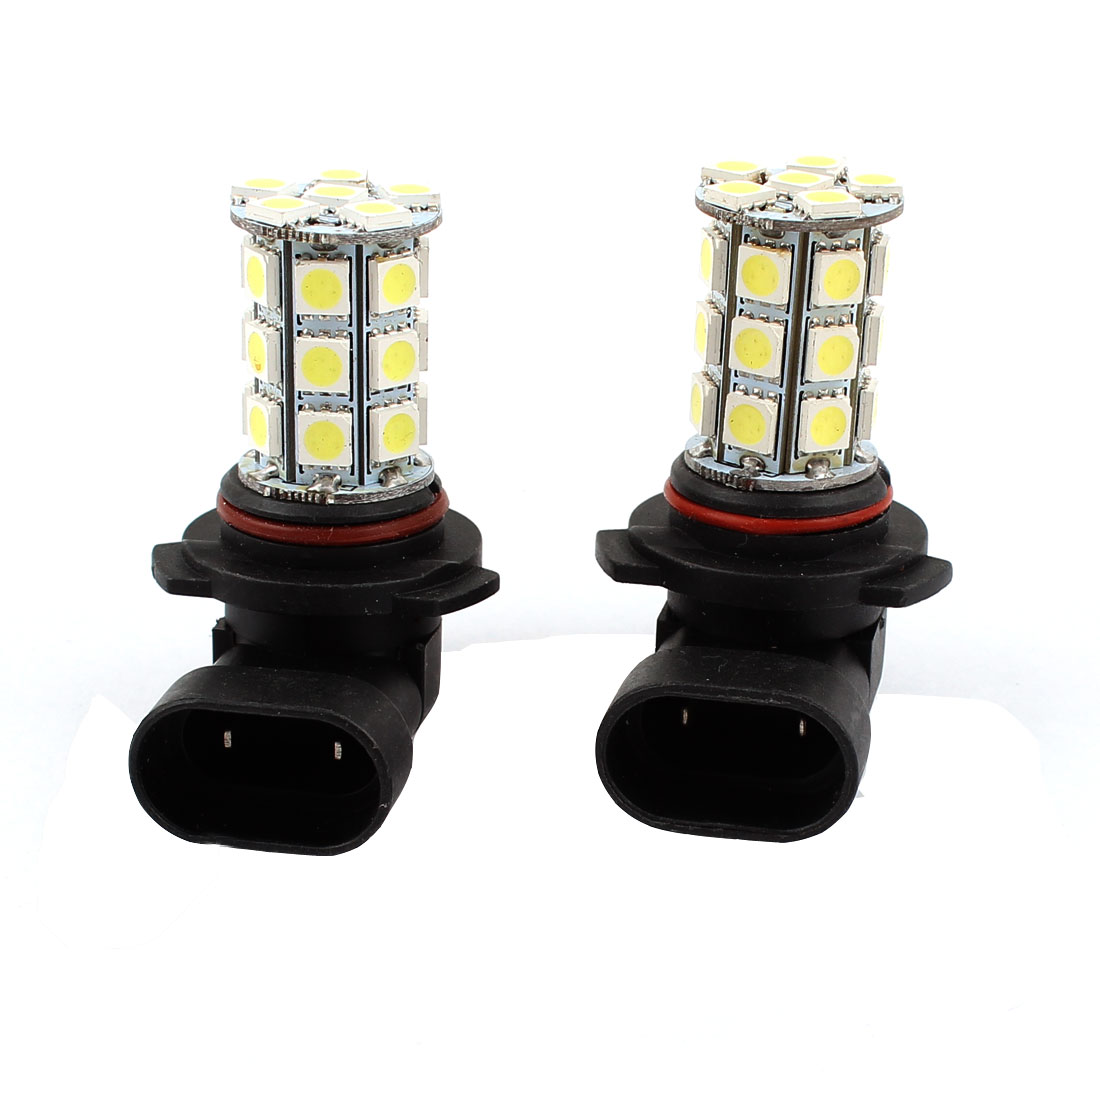 Car 9006 HB4 5050 SMD 27 LED White Head Light Daytime Bulb Lamp 12V 2 Pcs